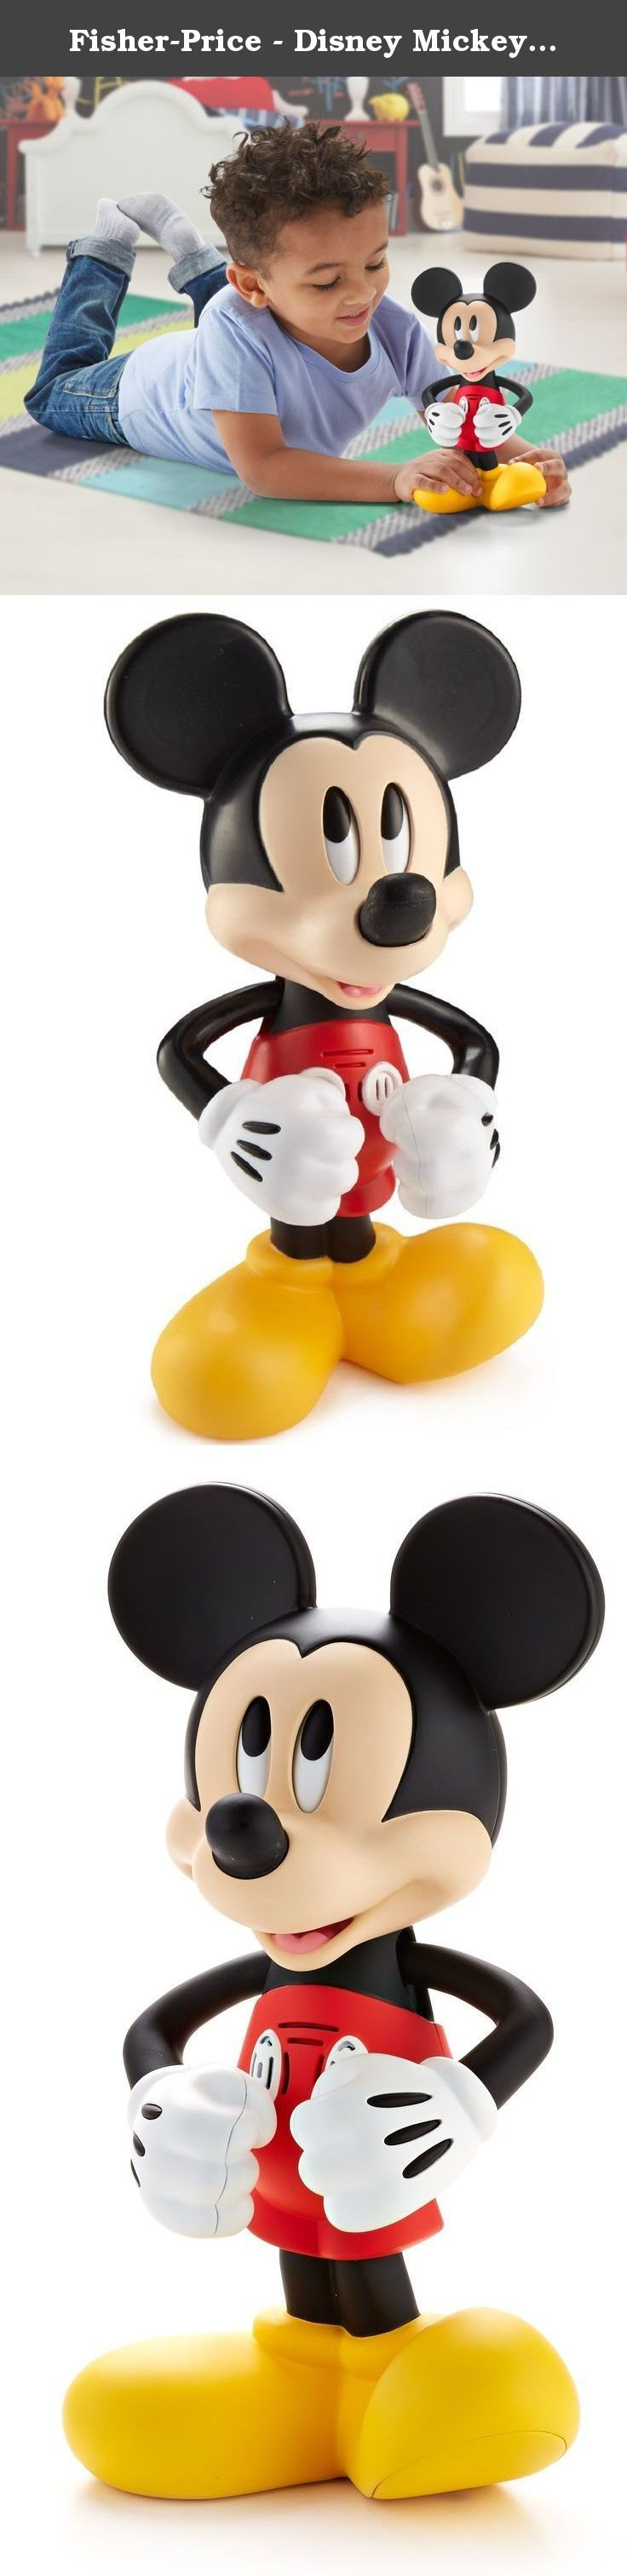 """Fisher-Price - Disney Mickey Mouse Clubhouse - Hot Dog Rockin' Mickey. Everyone loves to do the Hot Dog dance, especially your Disney pal Mickey Mouse! Tilt his ears from side to side and watch as his arms magically sway back and forth like he is doing the Hot Dog dance. As Mickey's head and arms move, his eyes also look from side to side as you hear funny phrases and sounds and he sings the """"Hot Dog"""" song!."""